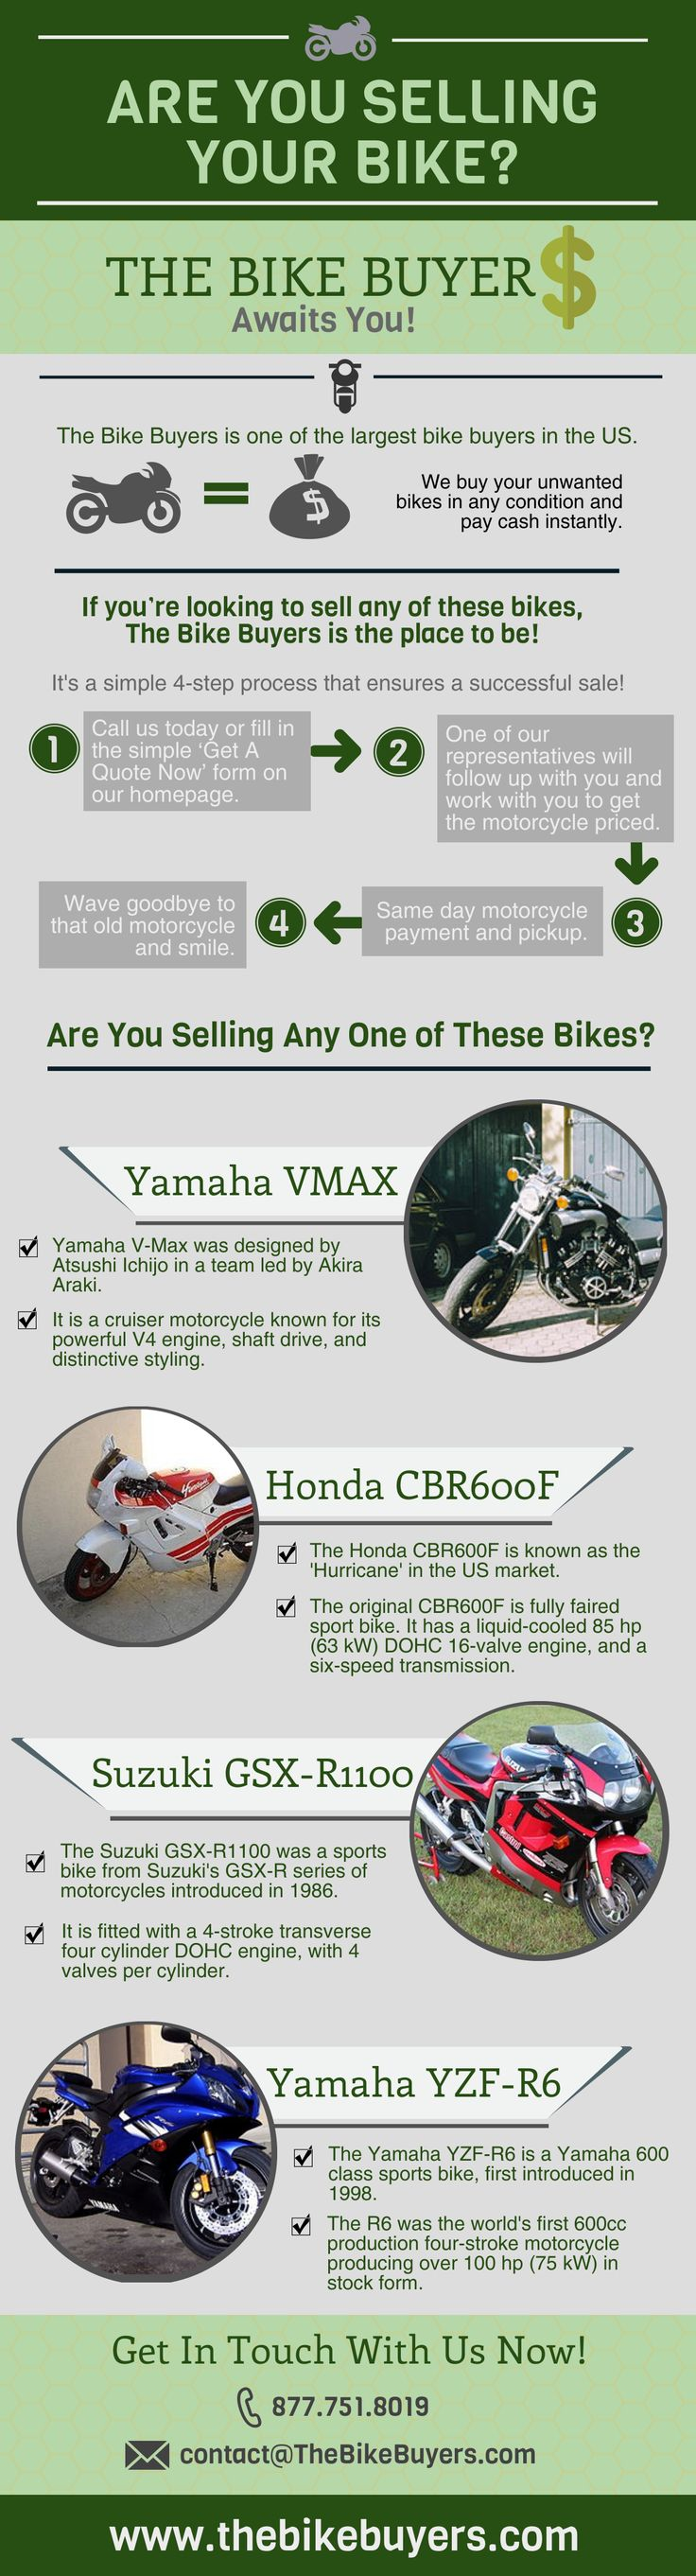 Nationwide cash for motorcycles, Sell my motorcycle that is new, used, damaged, wrecked, totaled, smashed. We buy BMW, Harley Davidson, Honda, ATVs and all motorcycles for cash money today, Cash motorcycle, snowmobiles,boats, sell your bike now, sell my bike now.